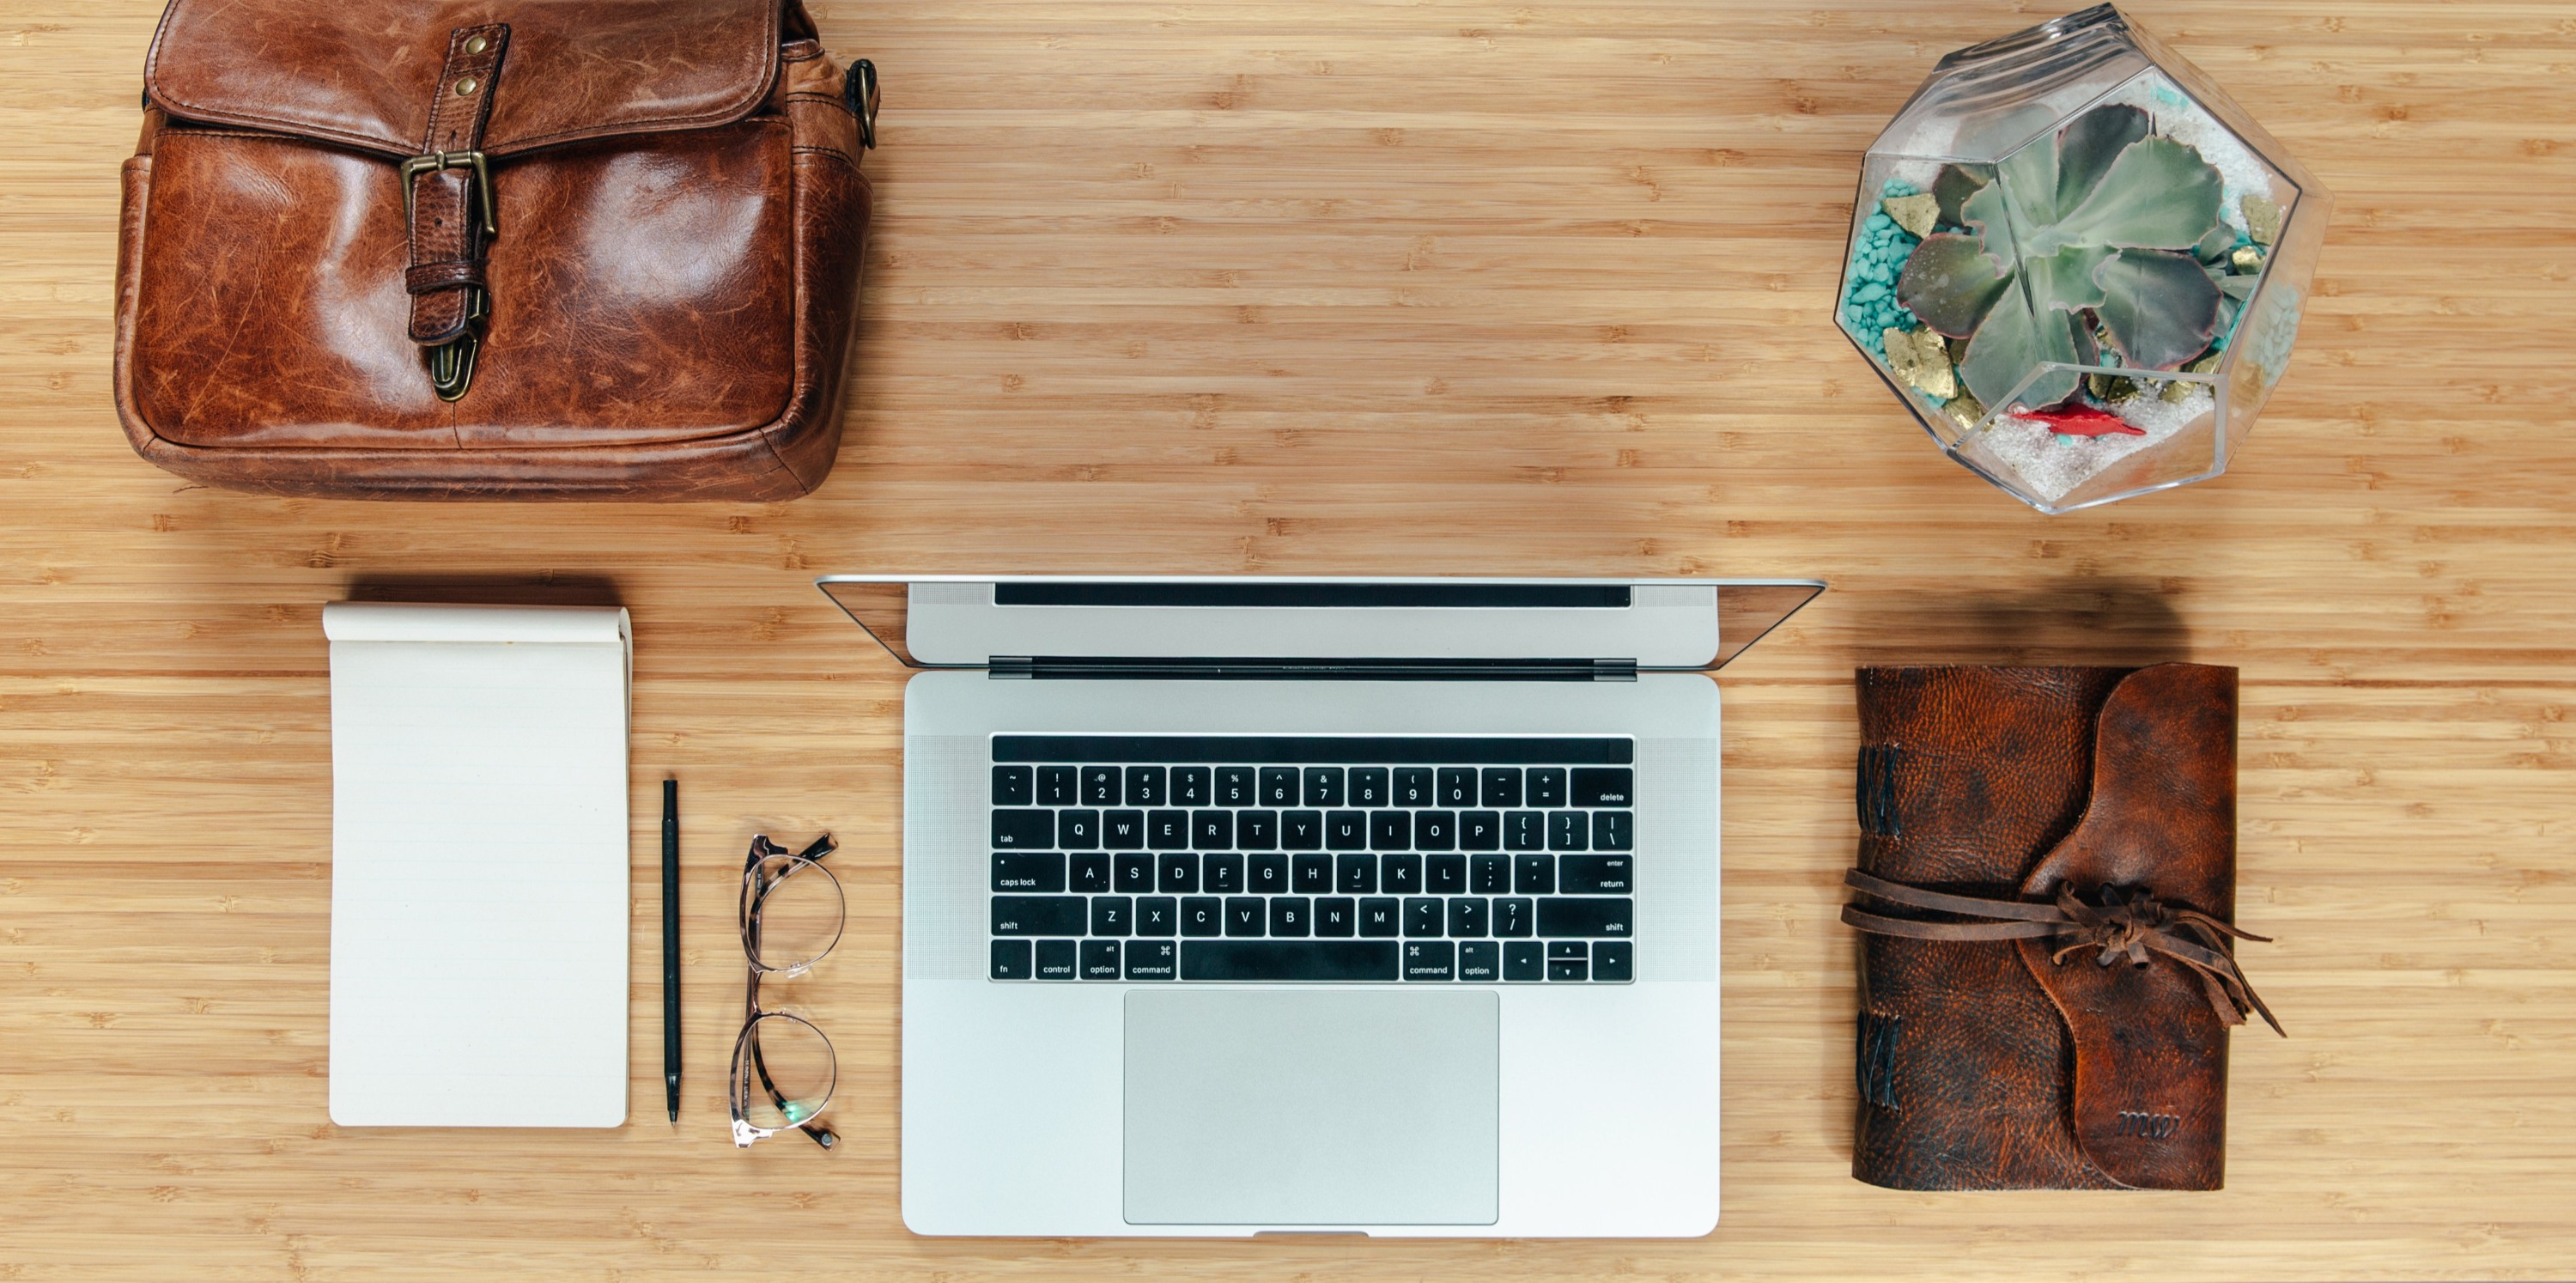 workspace-flatlay-with-leather-bag-and-n